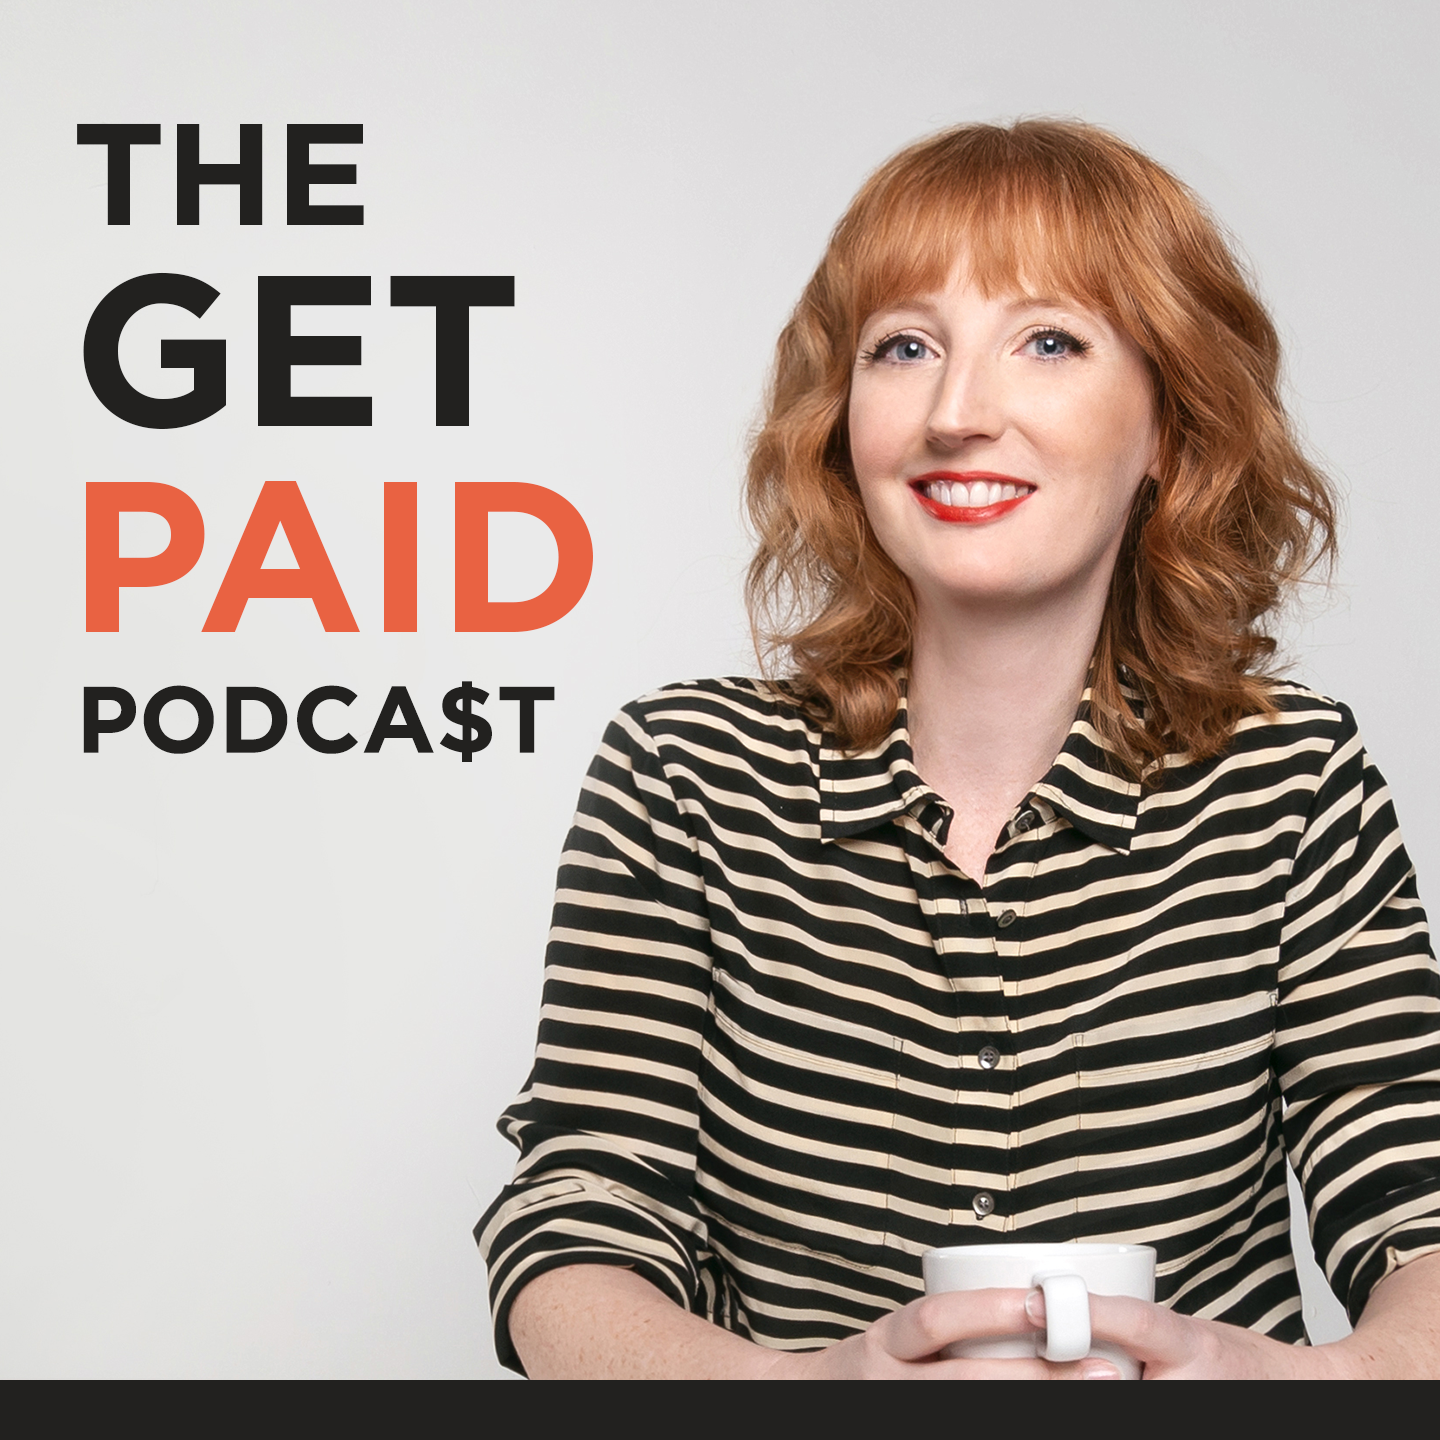 The Get Paid Podcast: The Stark Reality of Entrepreneurship and Being Your Own Boss show art